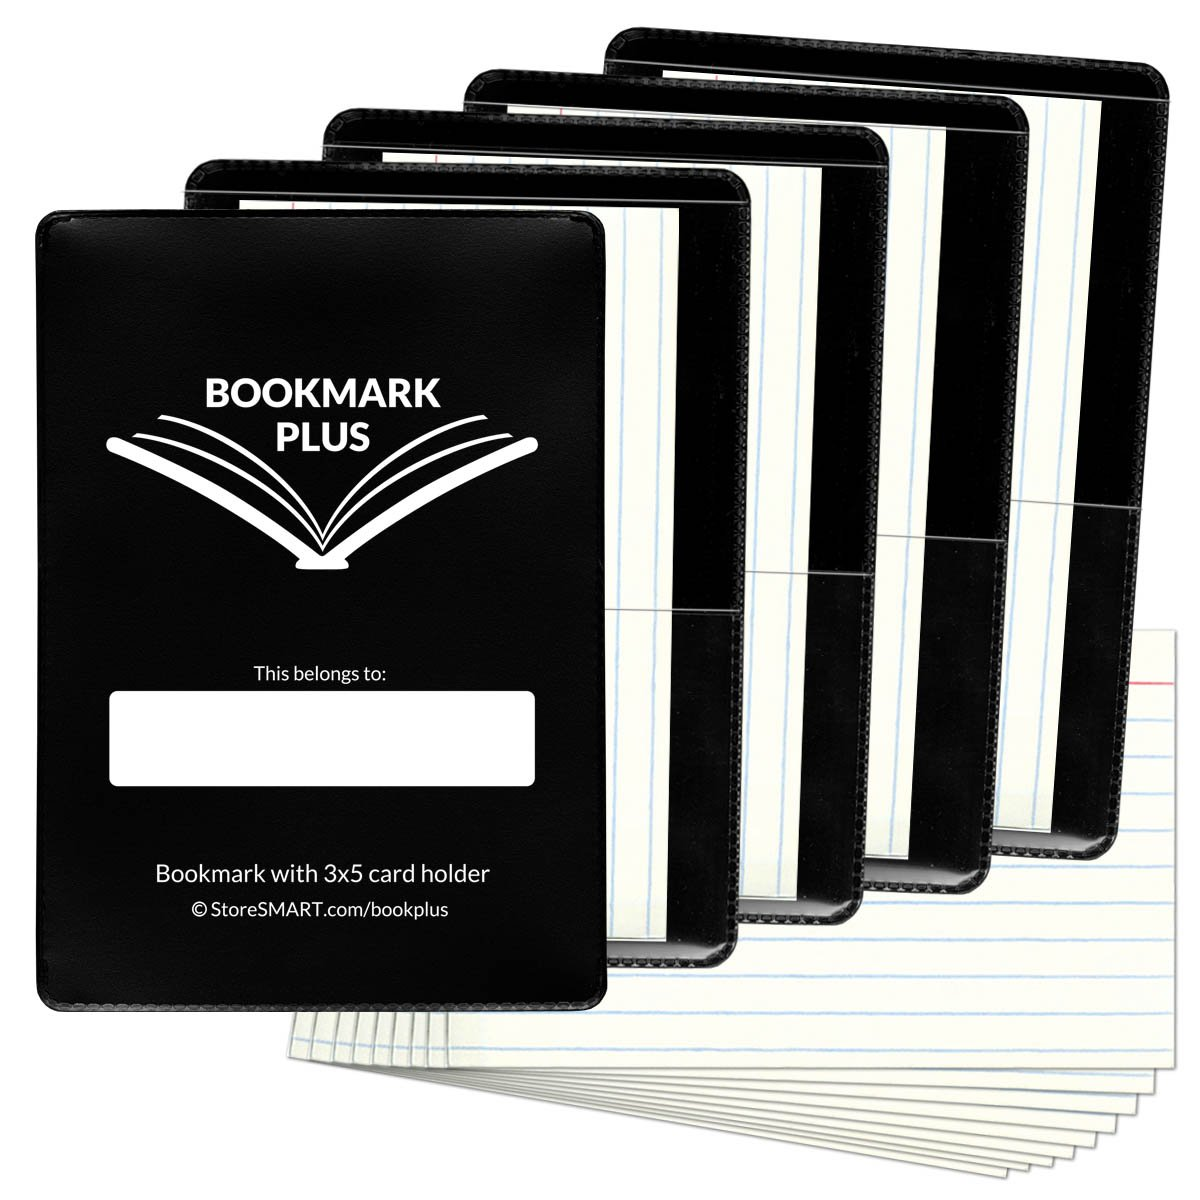 STORE SMART - Bookmark PLUS with 3x5 Card Holder - Black 5-Pack and 50 cards - BOOKPLUS-BK5